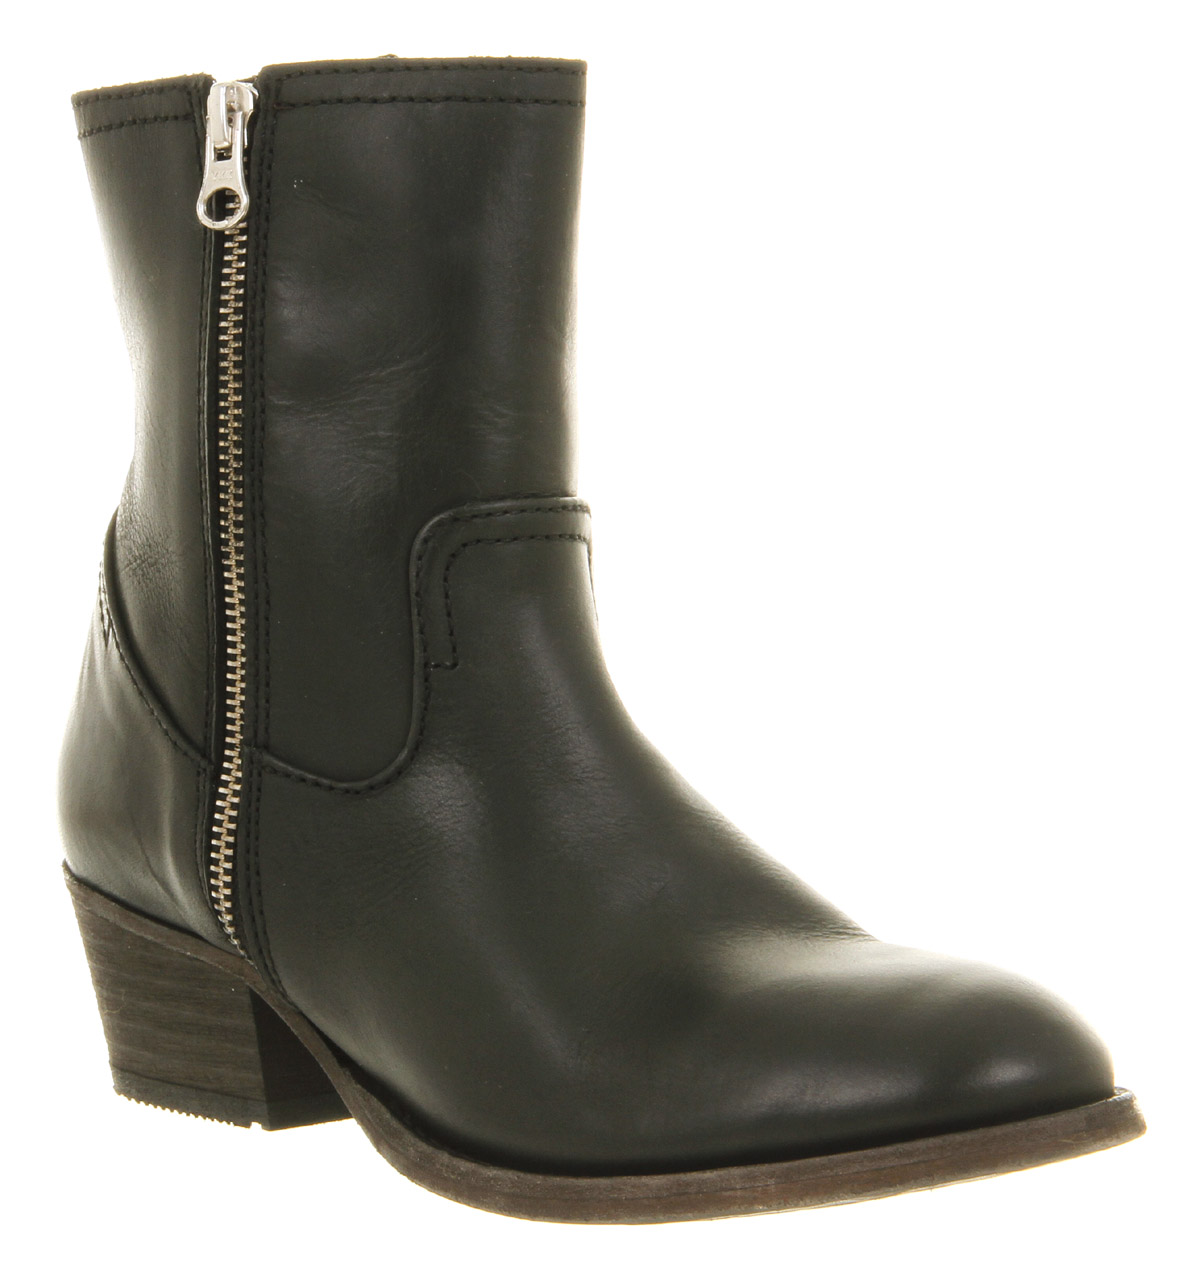 Get ready to kick up your heels in this black Western-inspired ankle boot. The pointed toe gives the look of a standard cowboy boot, while the gold stitching around the welt and the instep detail keeps it a modern city boot.